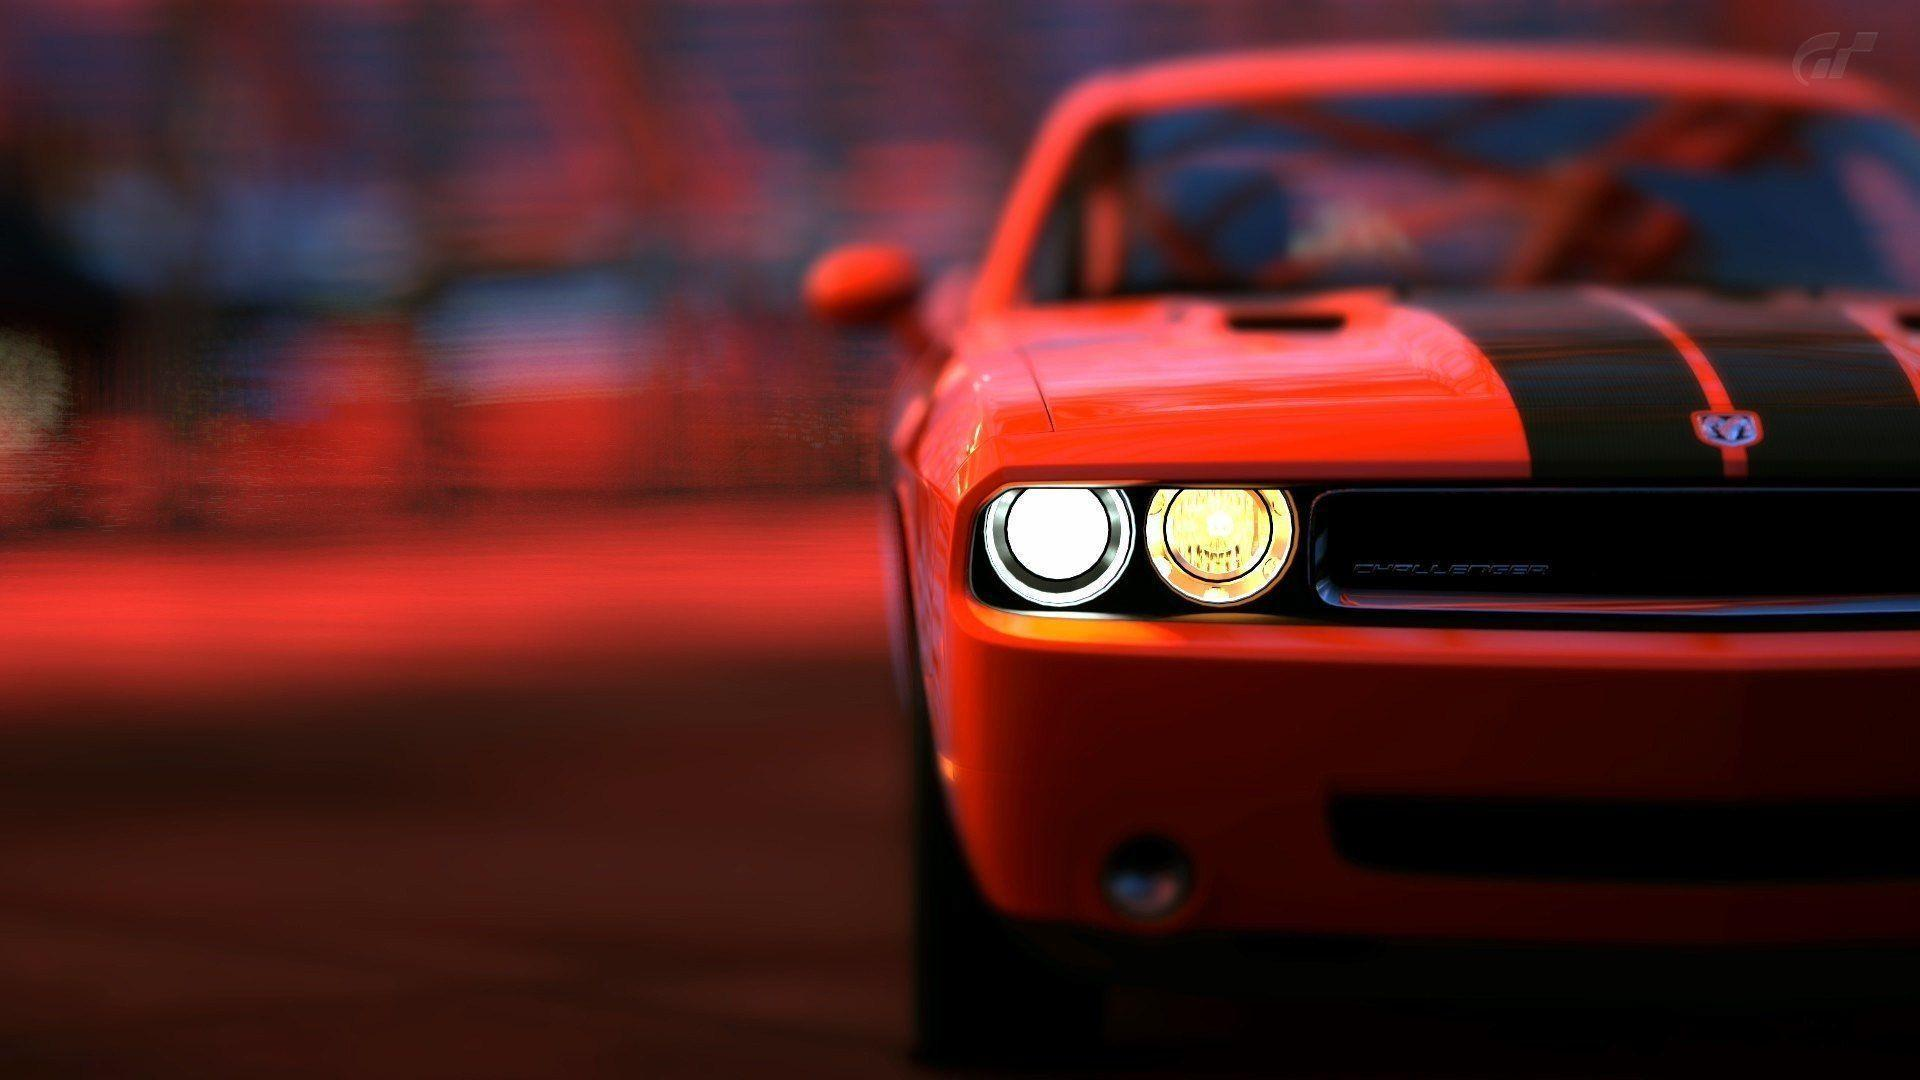 Dodge Challenger HD Wallpapers   Wallpaper Cave 83 Dodge Challenger SRT8 HD Wallpapers   Backgrounds   Wallpaper Abyss